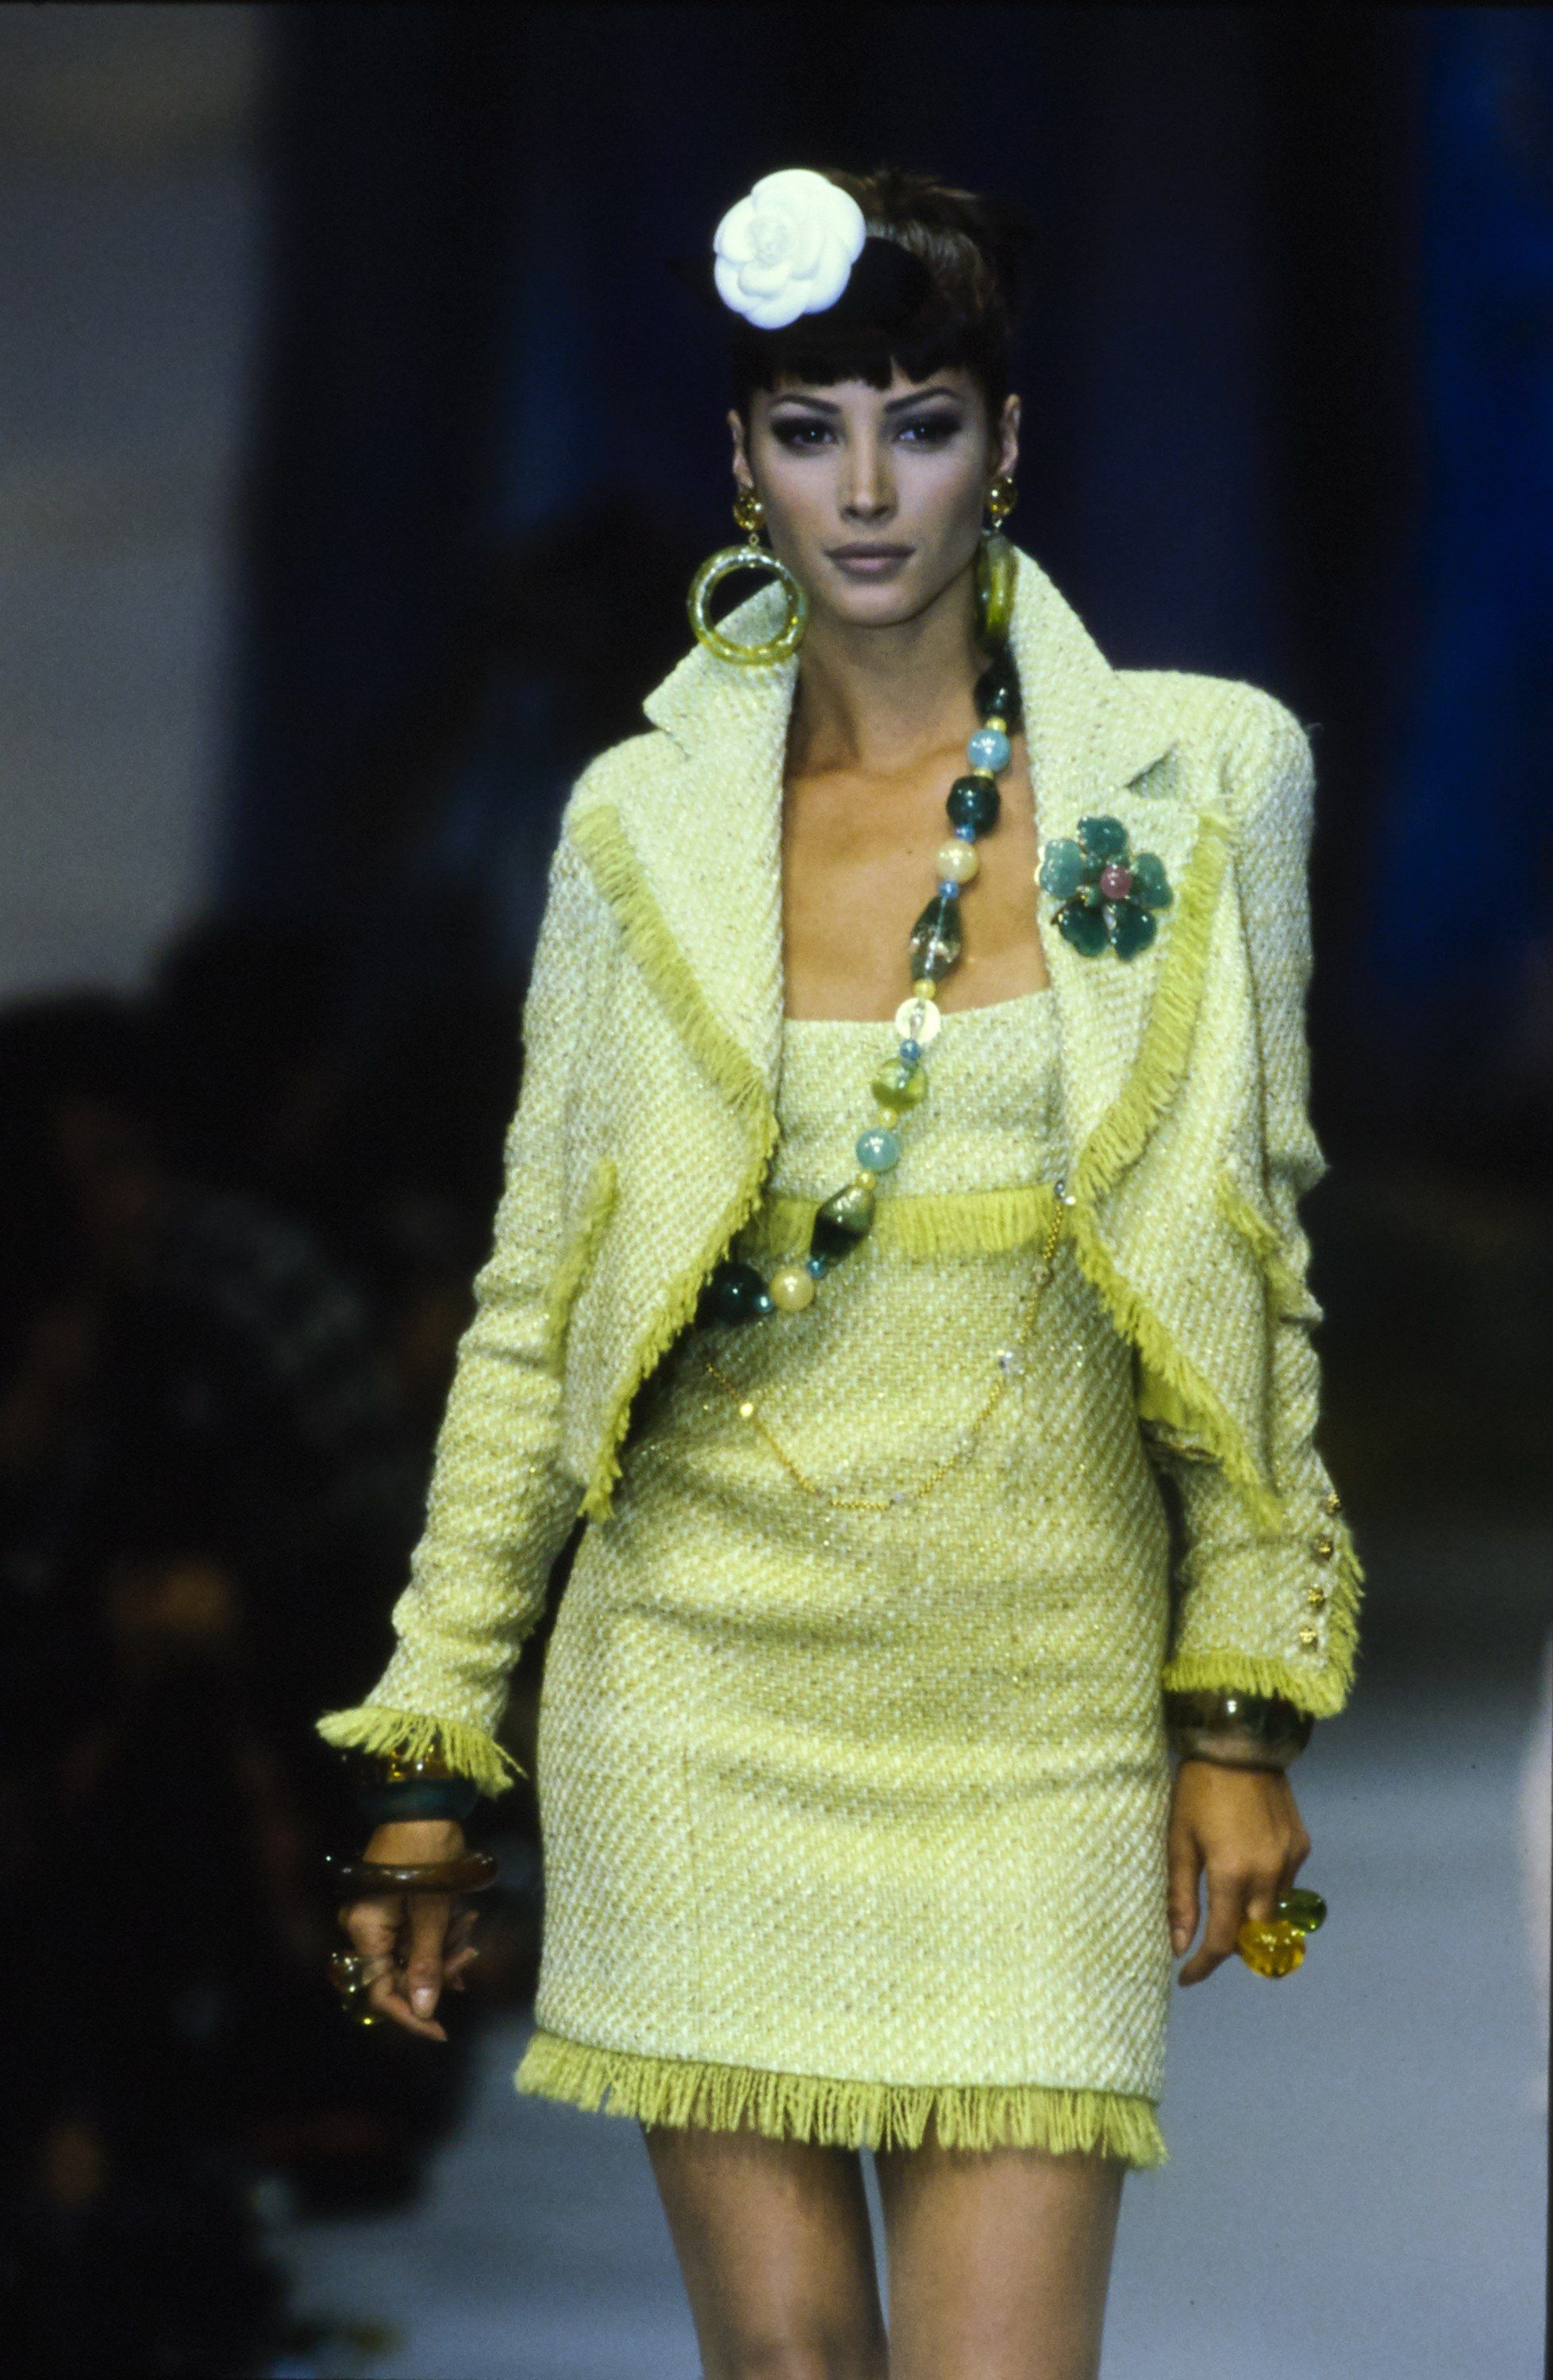 Chanel Spring 1992 Ready-to-Wear Fashion Show -  Chanel Spring 1992 Ready-to-Wear Fashion Show – Vogue  - #90sRunwayFashion #Chanel #Fashion #ReadytoWear #RunwayFashion2020 #RunwayFashionaesthetic #RunwayFashionchanel #RunwayFashioncrazy #RunwayFashiondior #RunwayFashiondresses #RunwayFashionvogue #RunwayFashionwomen #Show #Spring